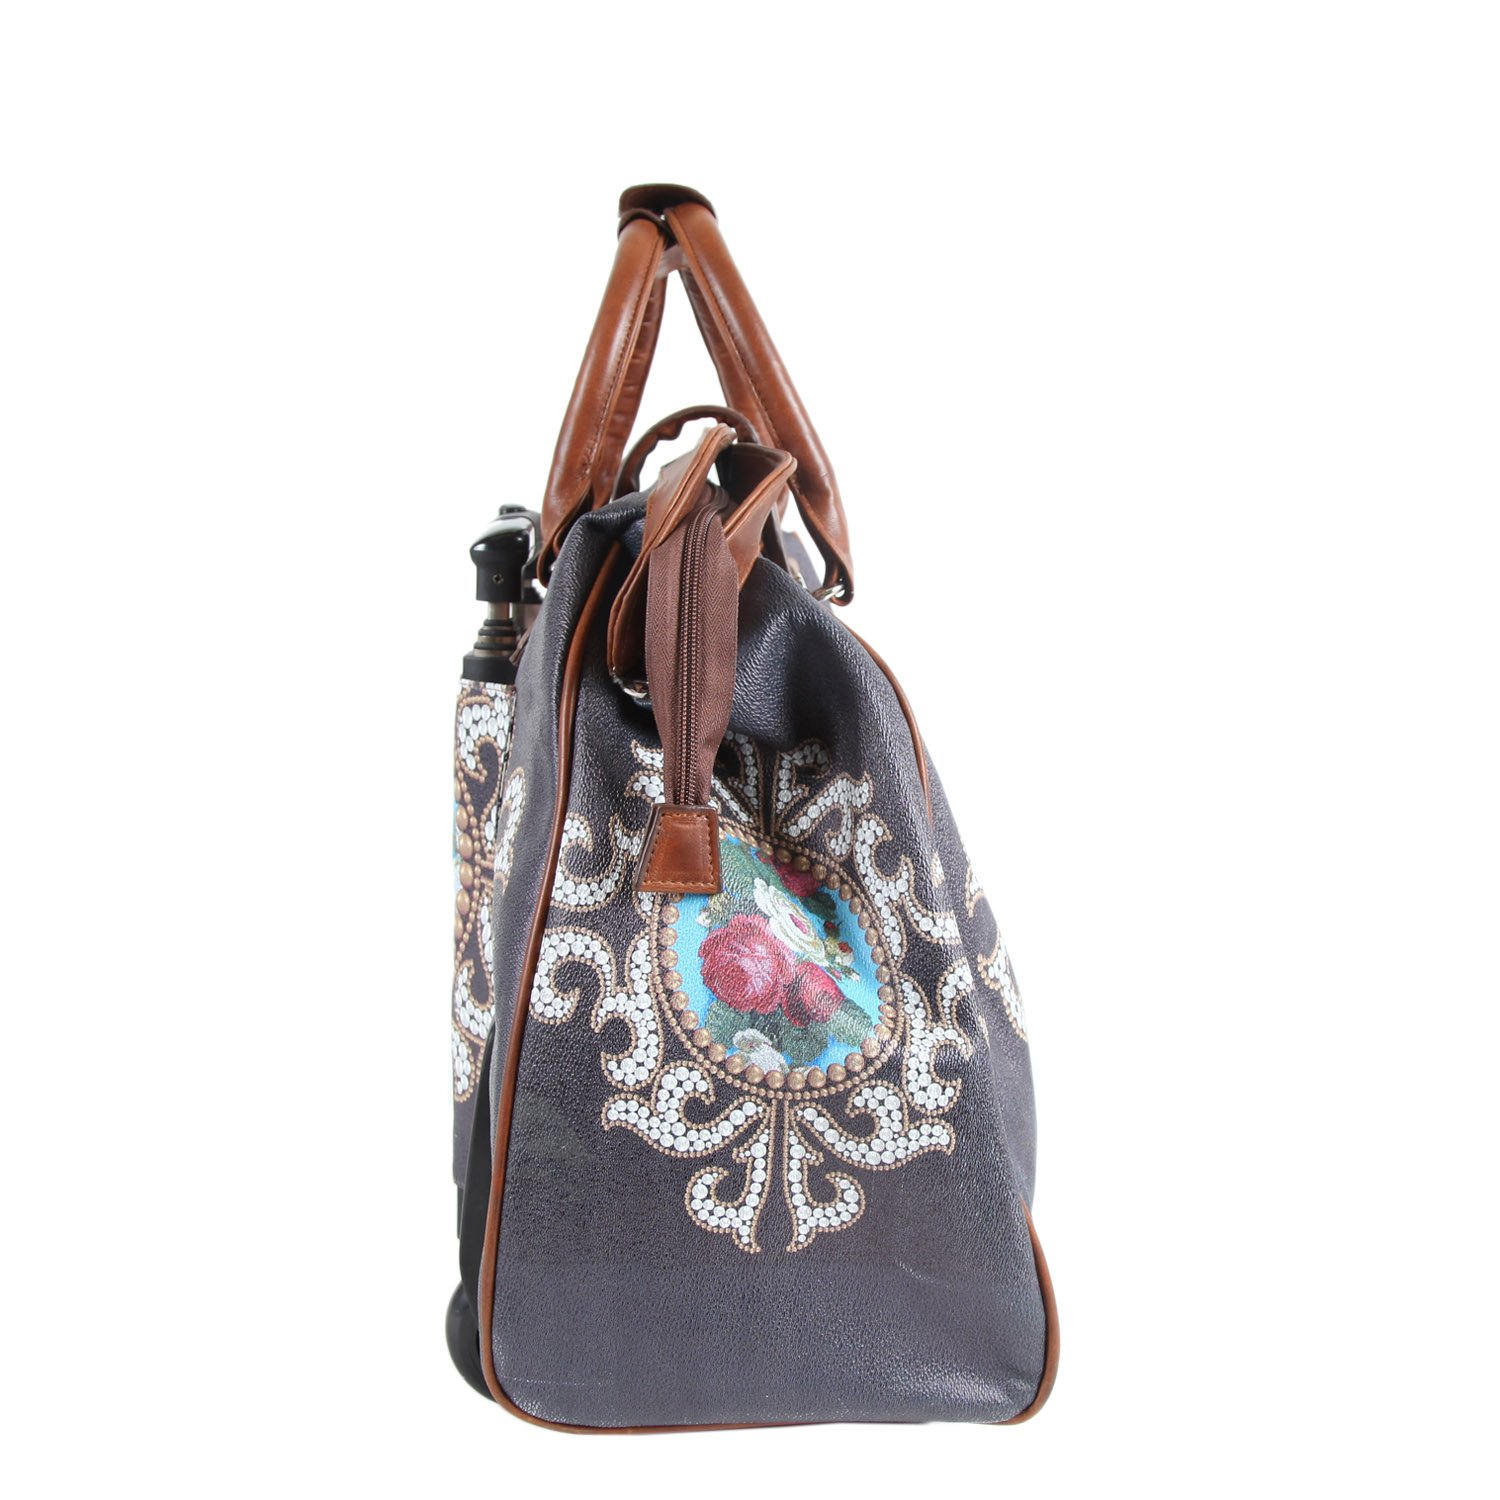 Nicole Lee Cheri Rolling Business Tote, Rose Pearl, One Size by Nicole Lee (Image #8)